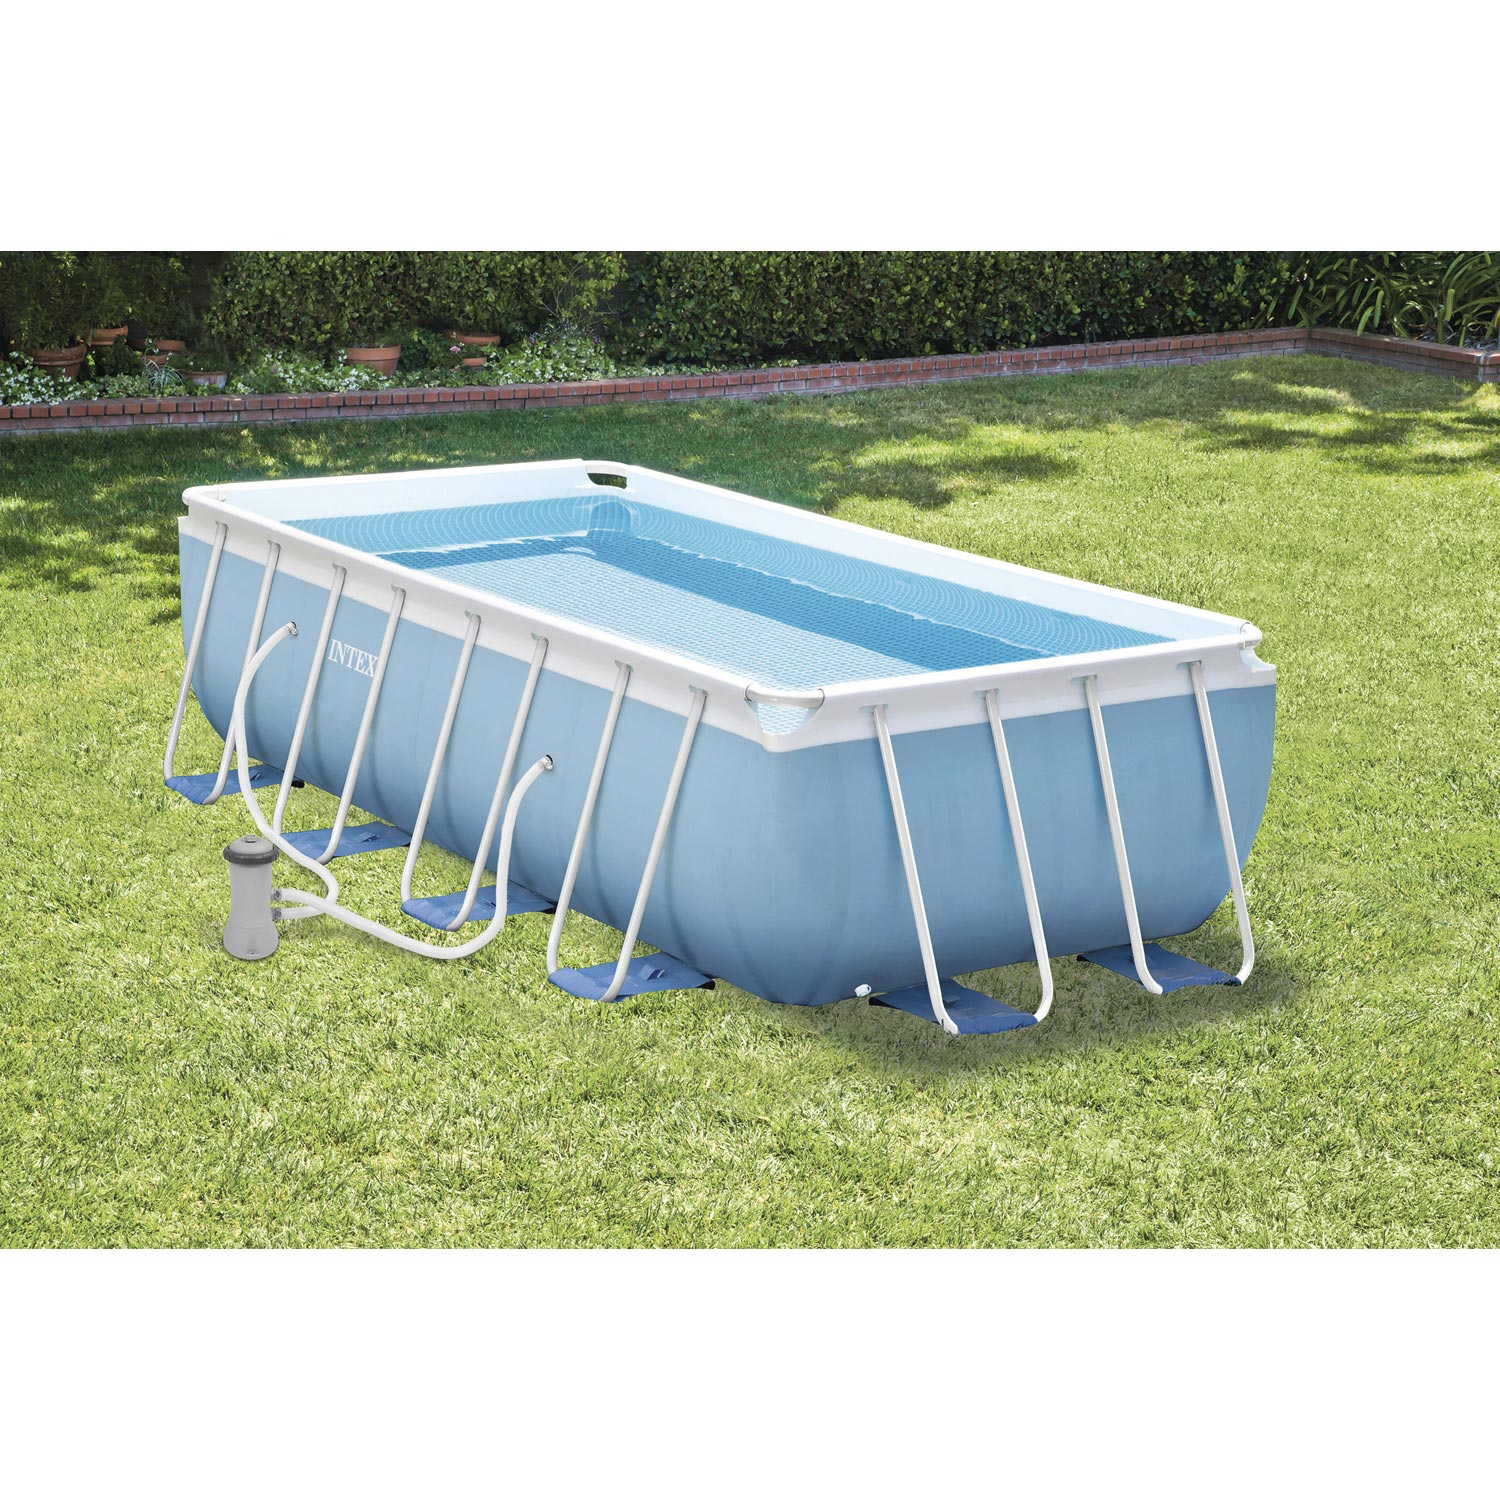 Piscine hors sol autoportante tubulaire prism frame intex for Pediluve piscine hors sol